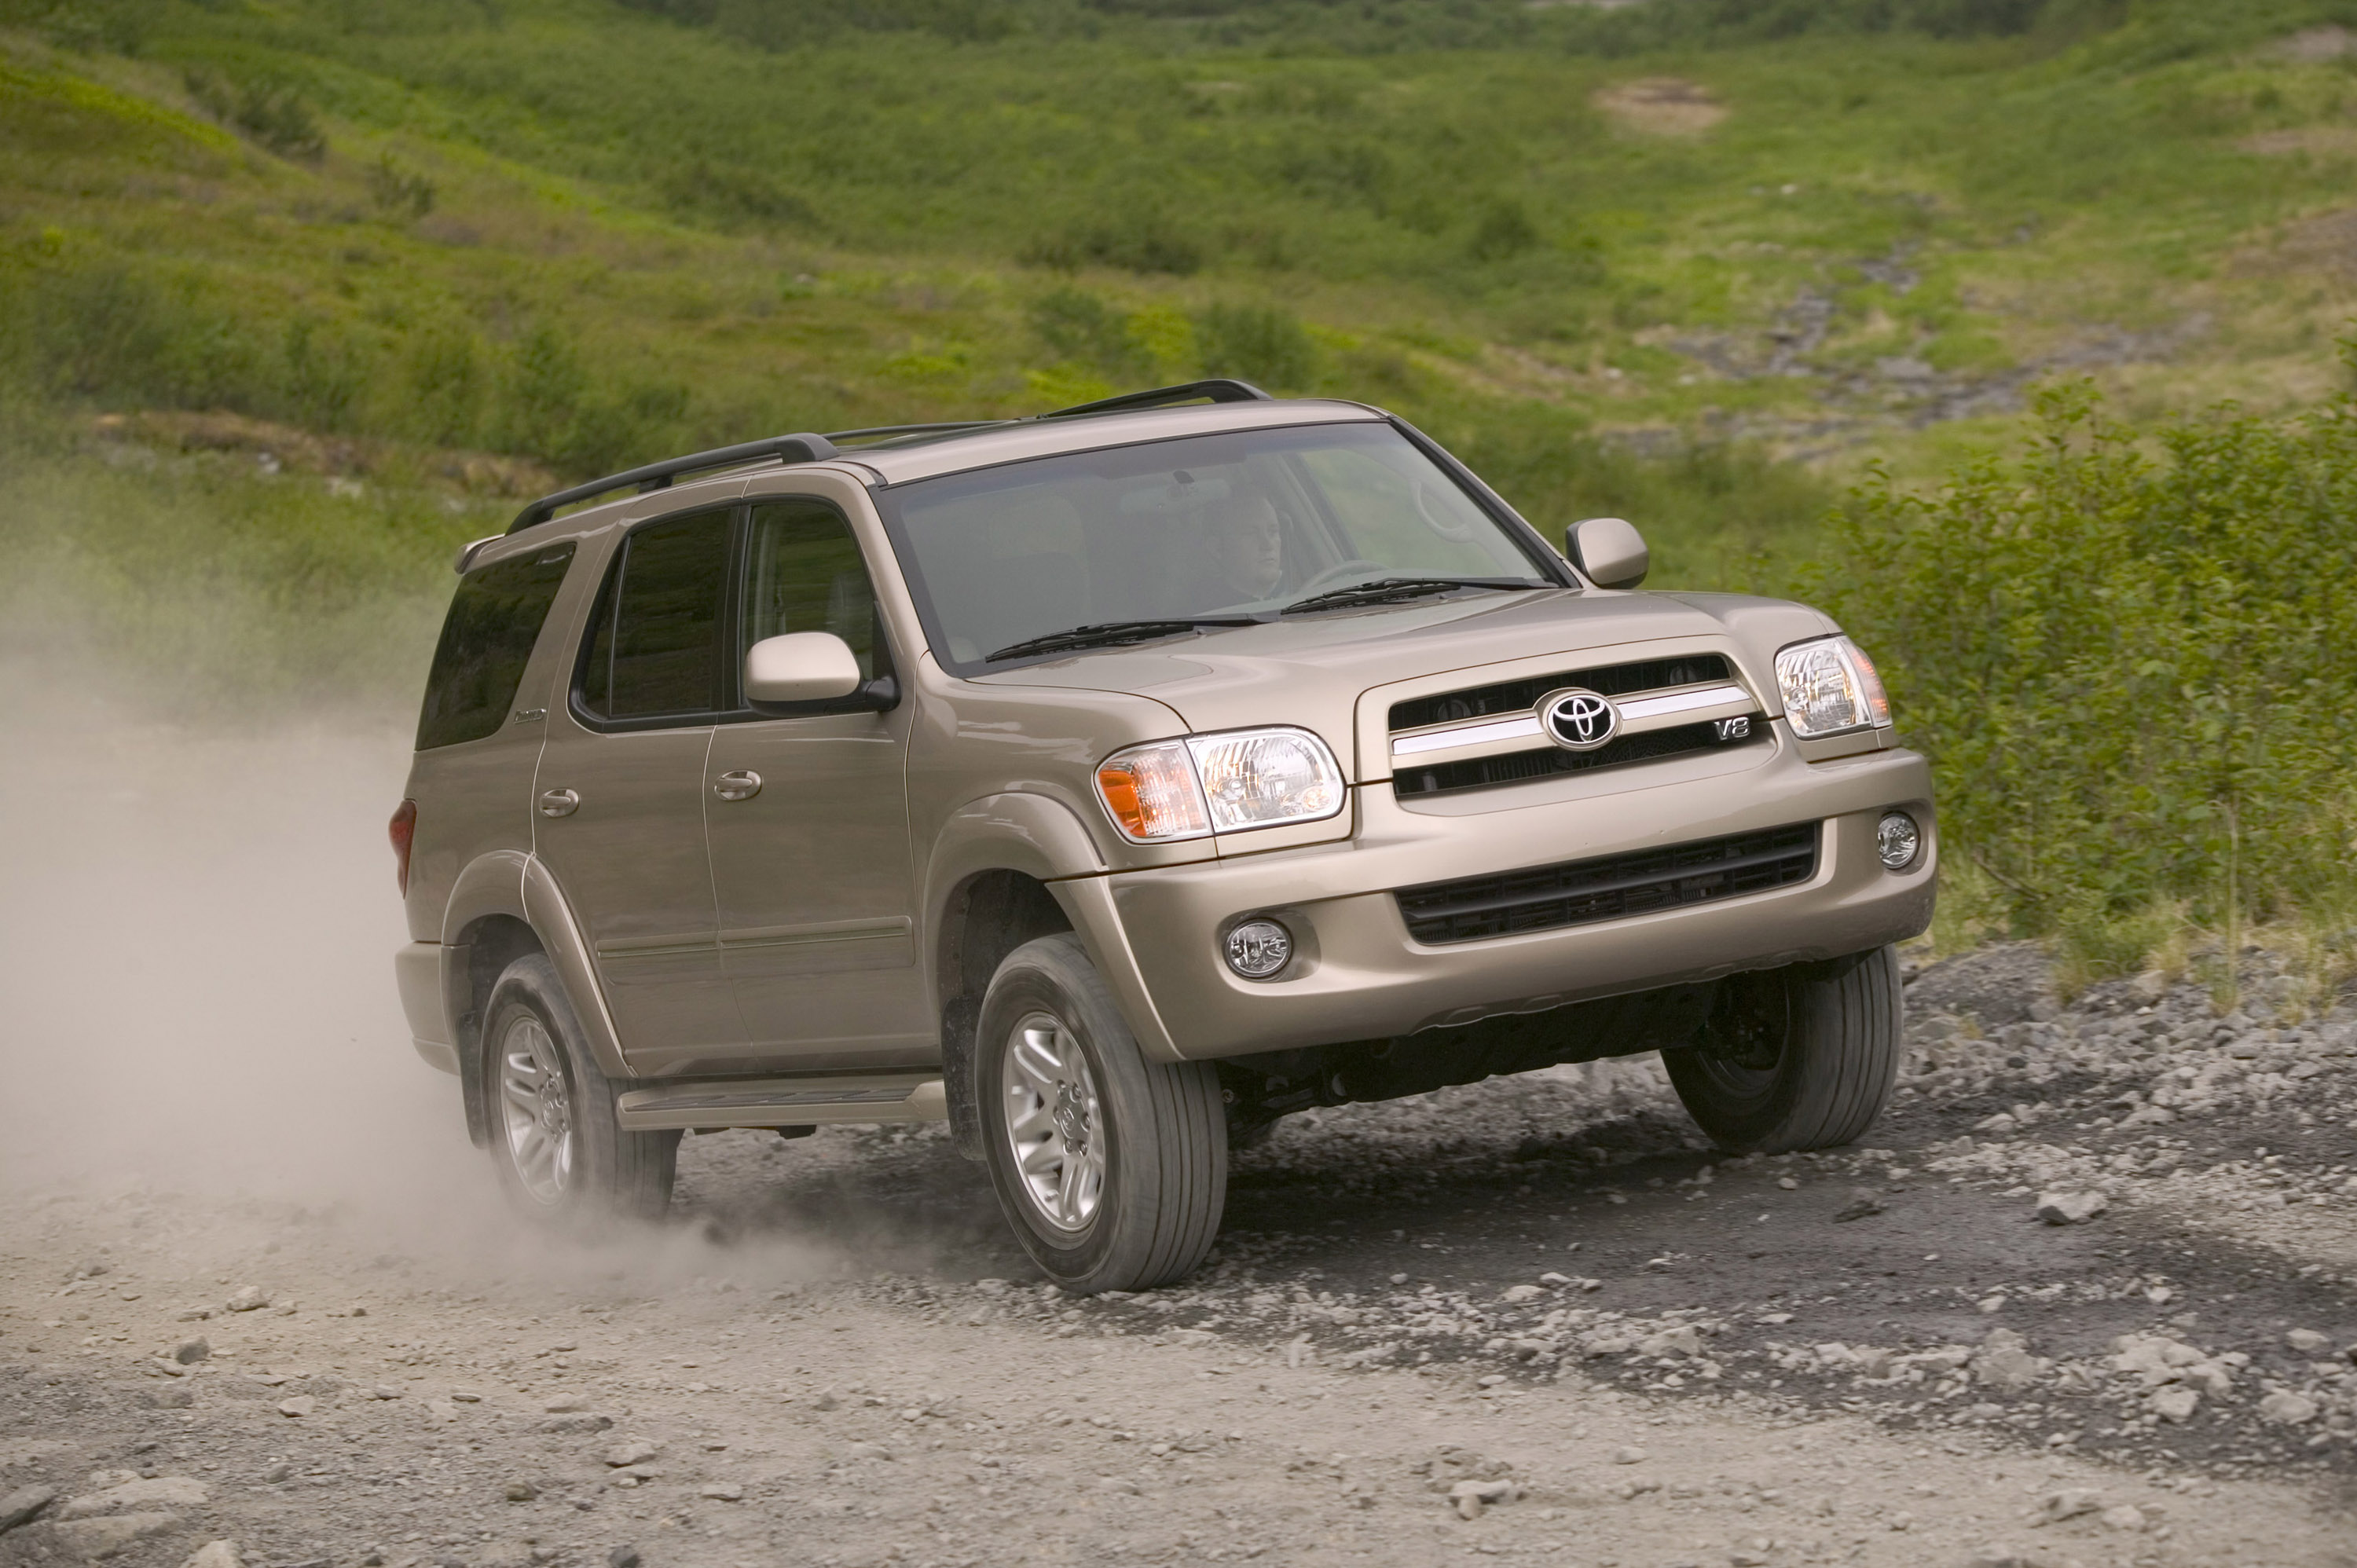 The toyota sequoia full size sport utility vehicle suv continues into 2006 with minor enhancements after gaining a more powerful engine freshened styling